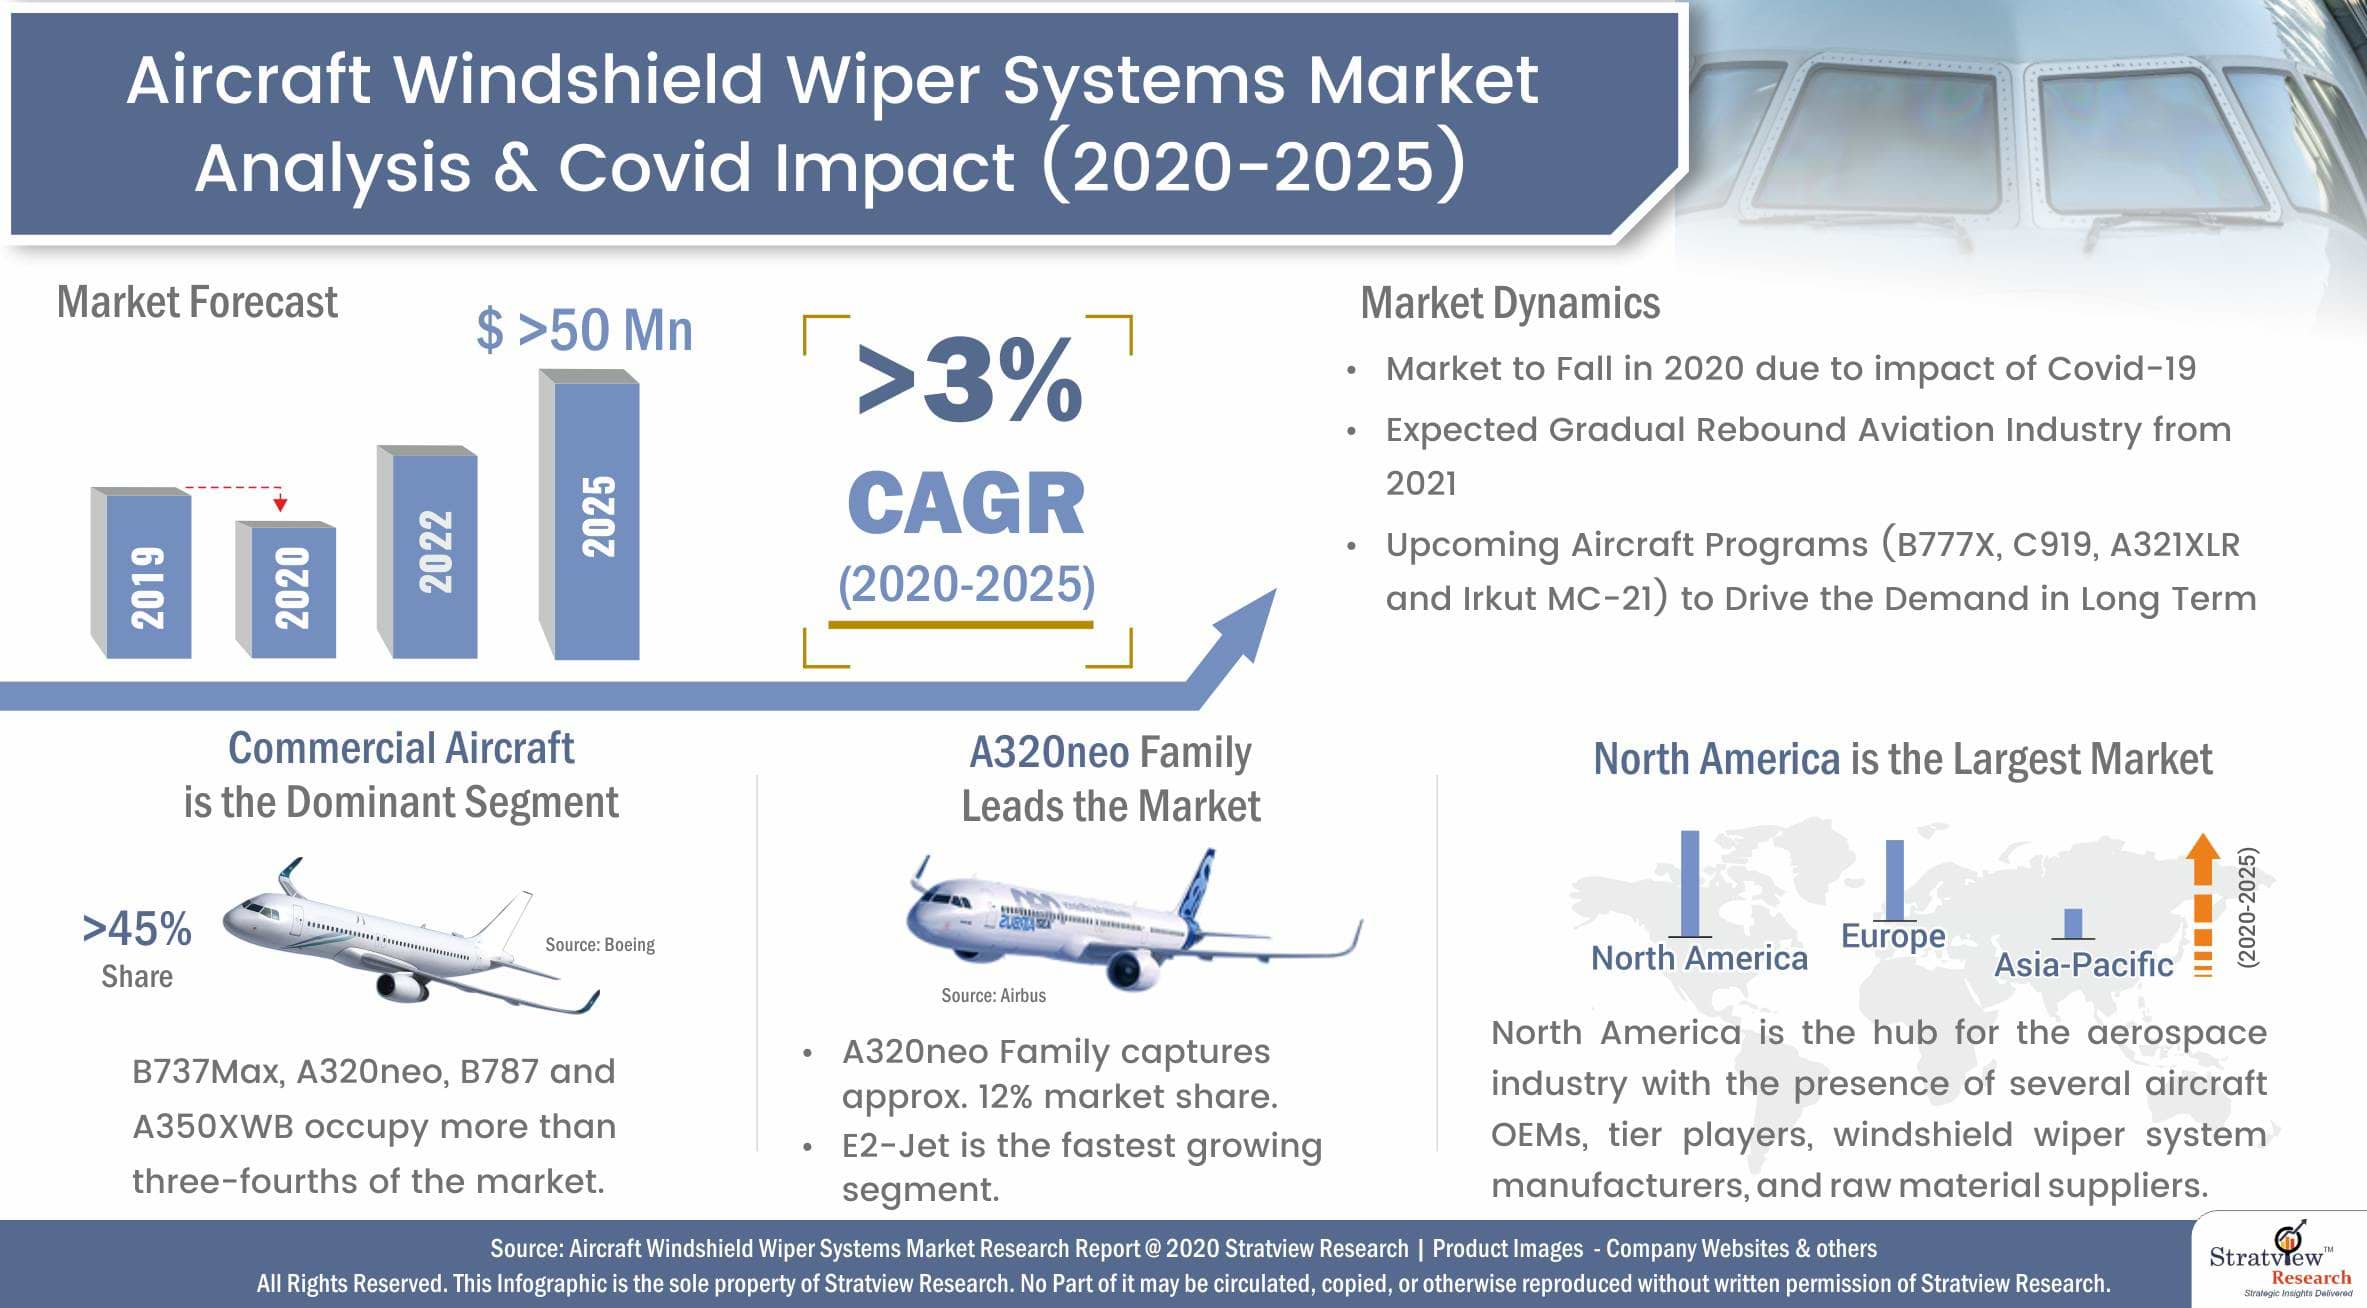 Aircraft Windshield Wiper Systems Market Analysis